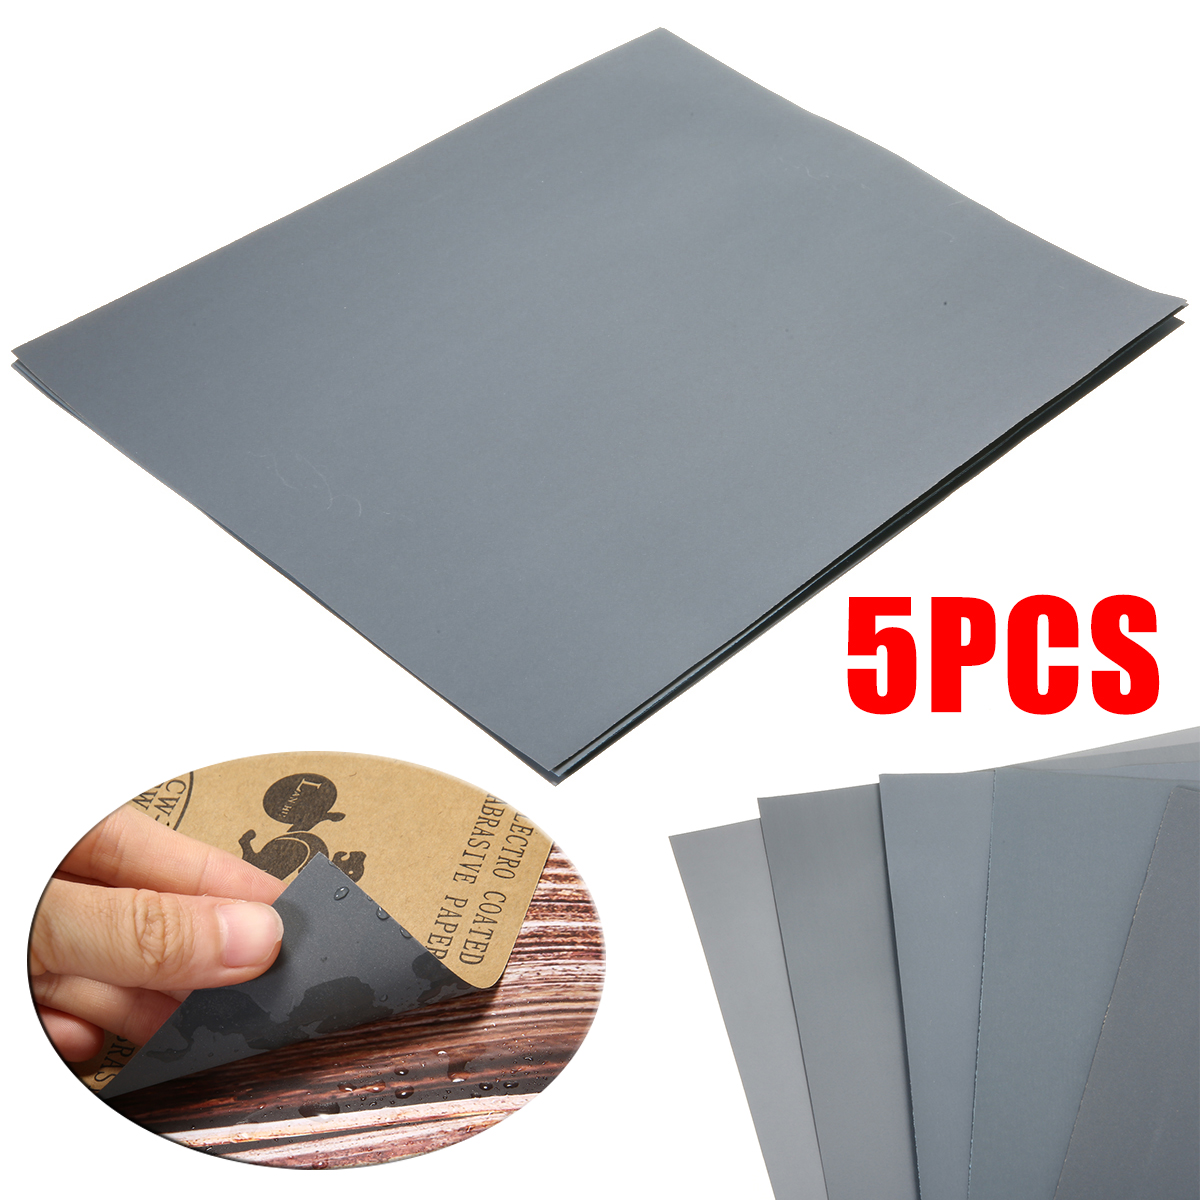 5Pcs Waterproof Sand Papers Wet And Dry Sand Paper Mixed Assorted Grit 2000 2500 3000 5000 7000 For Car Paint Varnish Filler